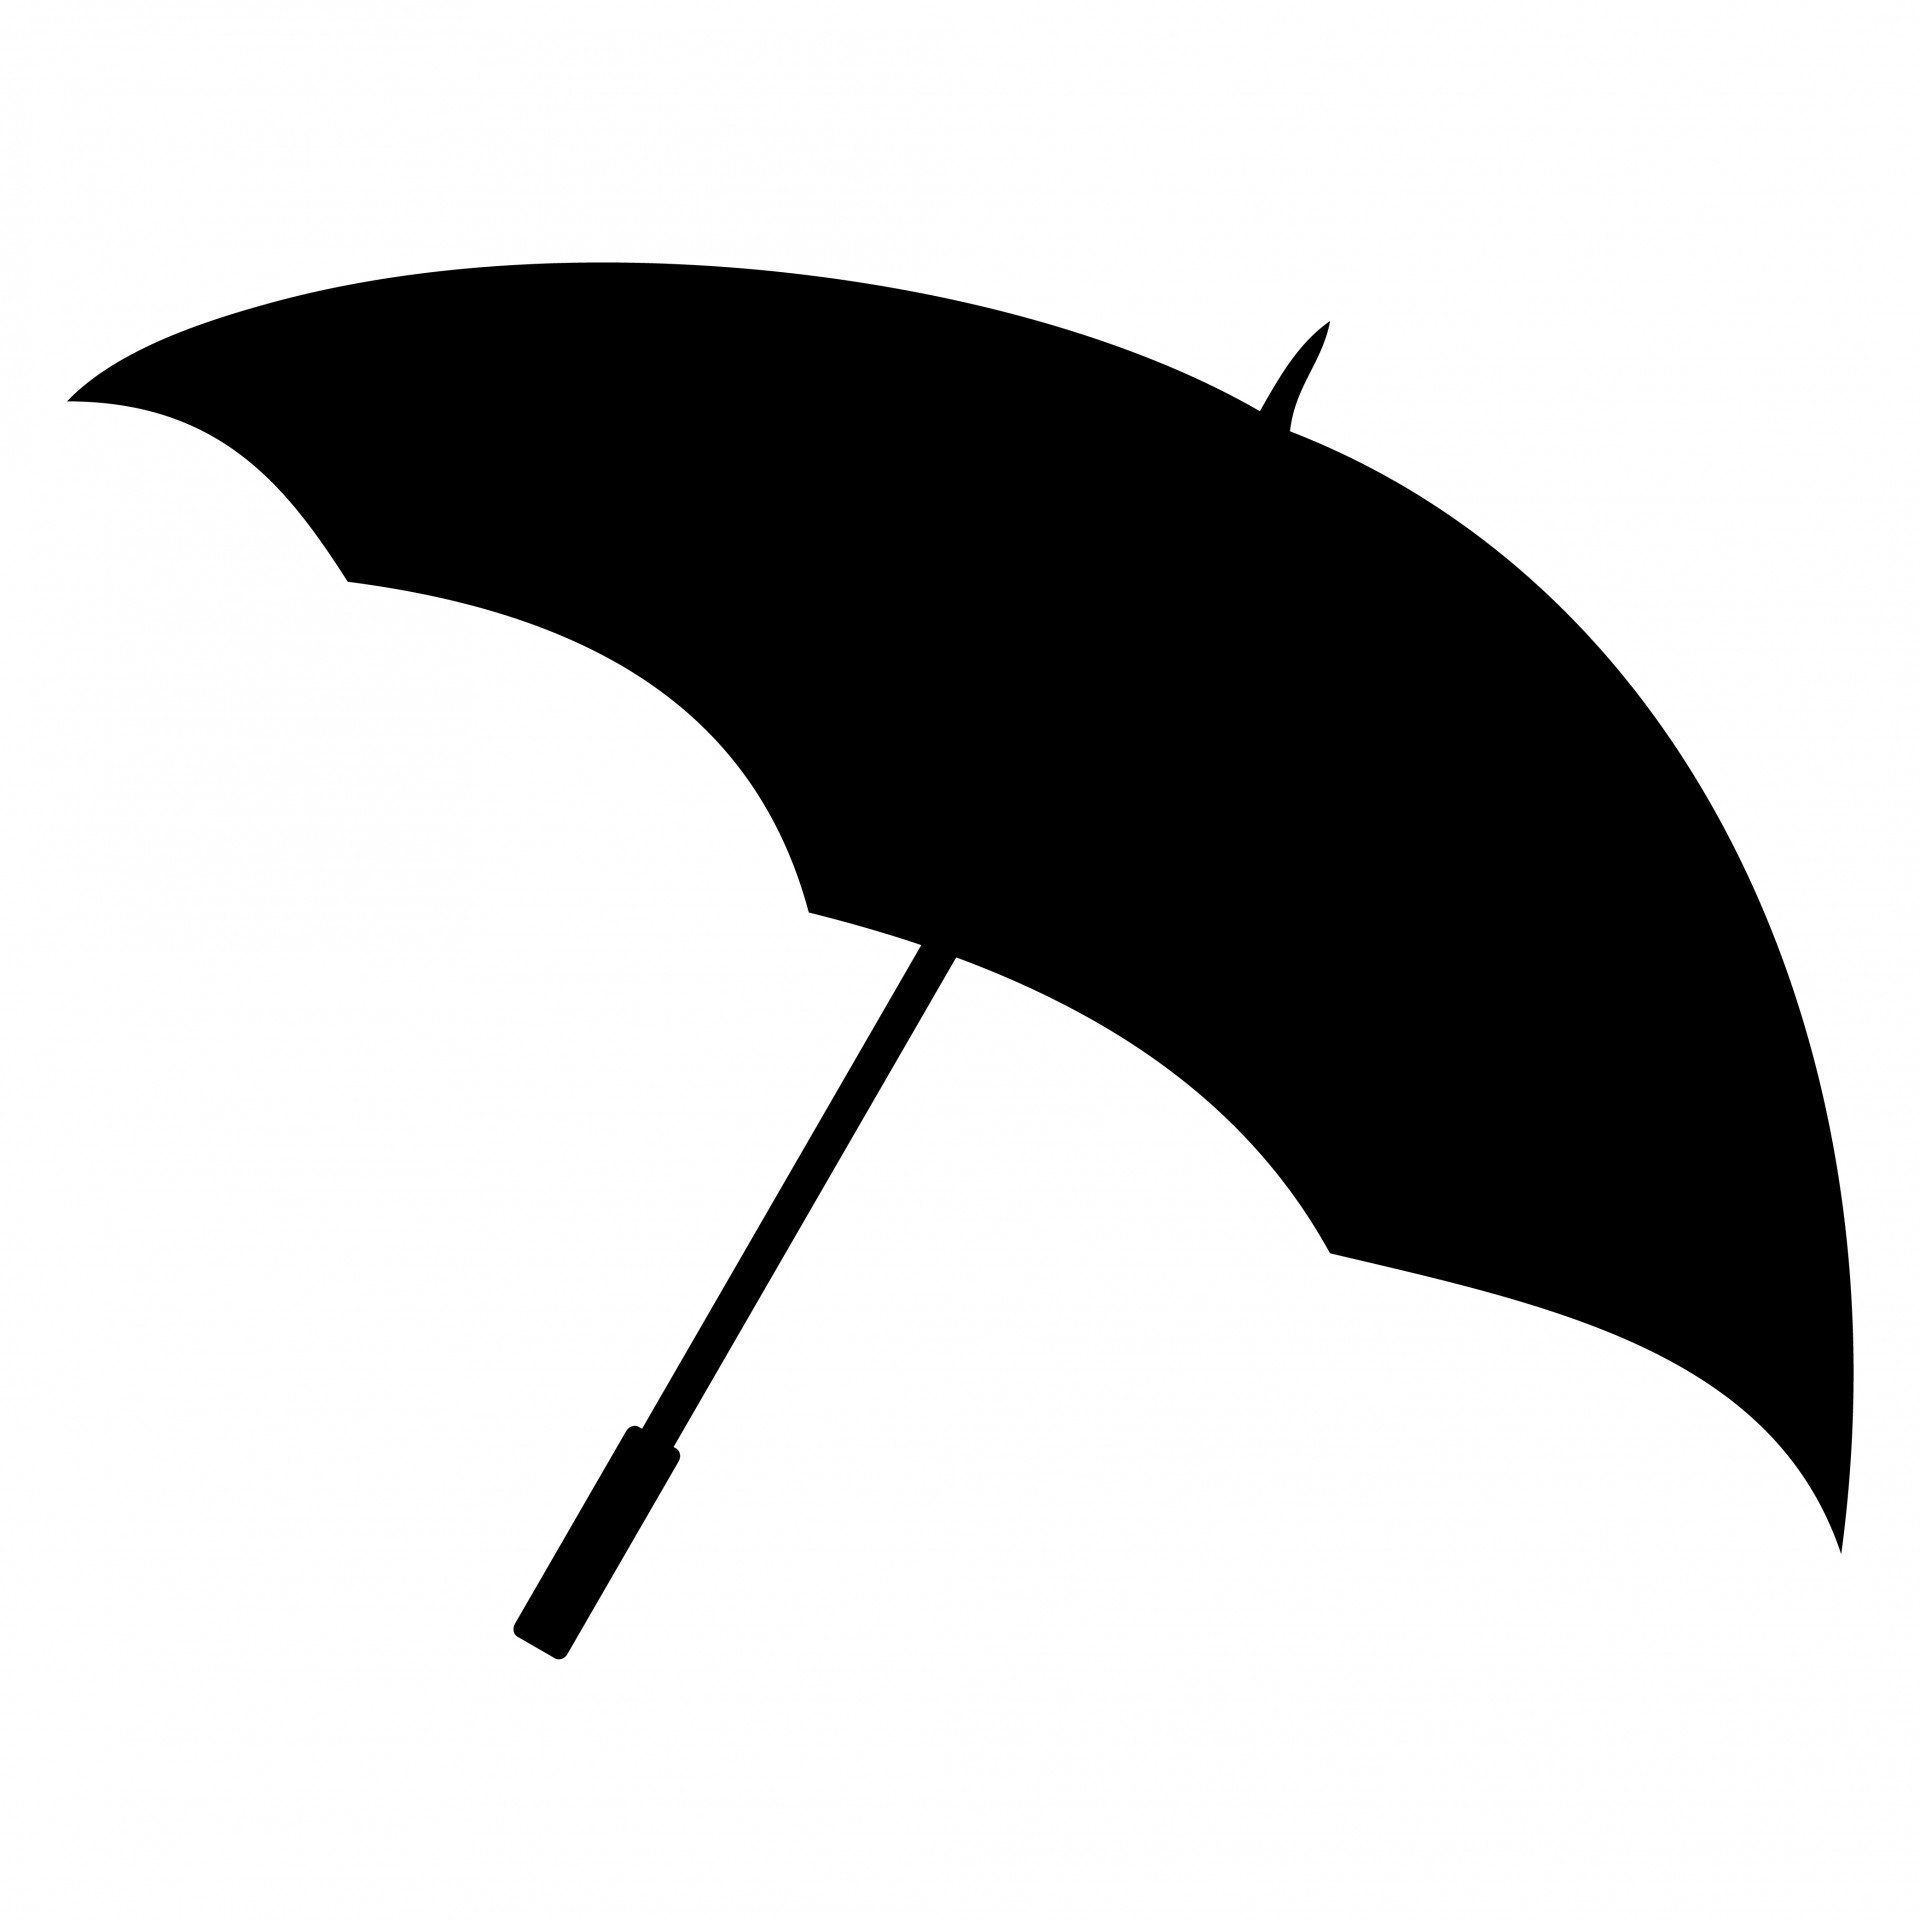 Umbrella clipart free stock .-Umbrella clipart free stock .-10